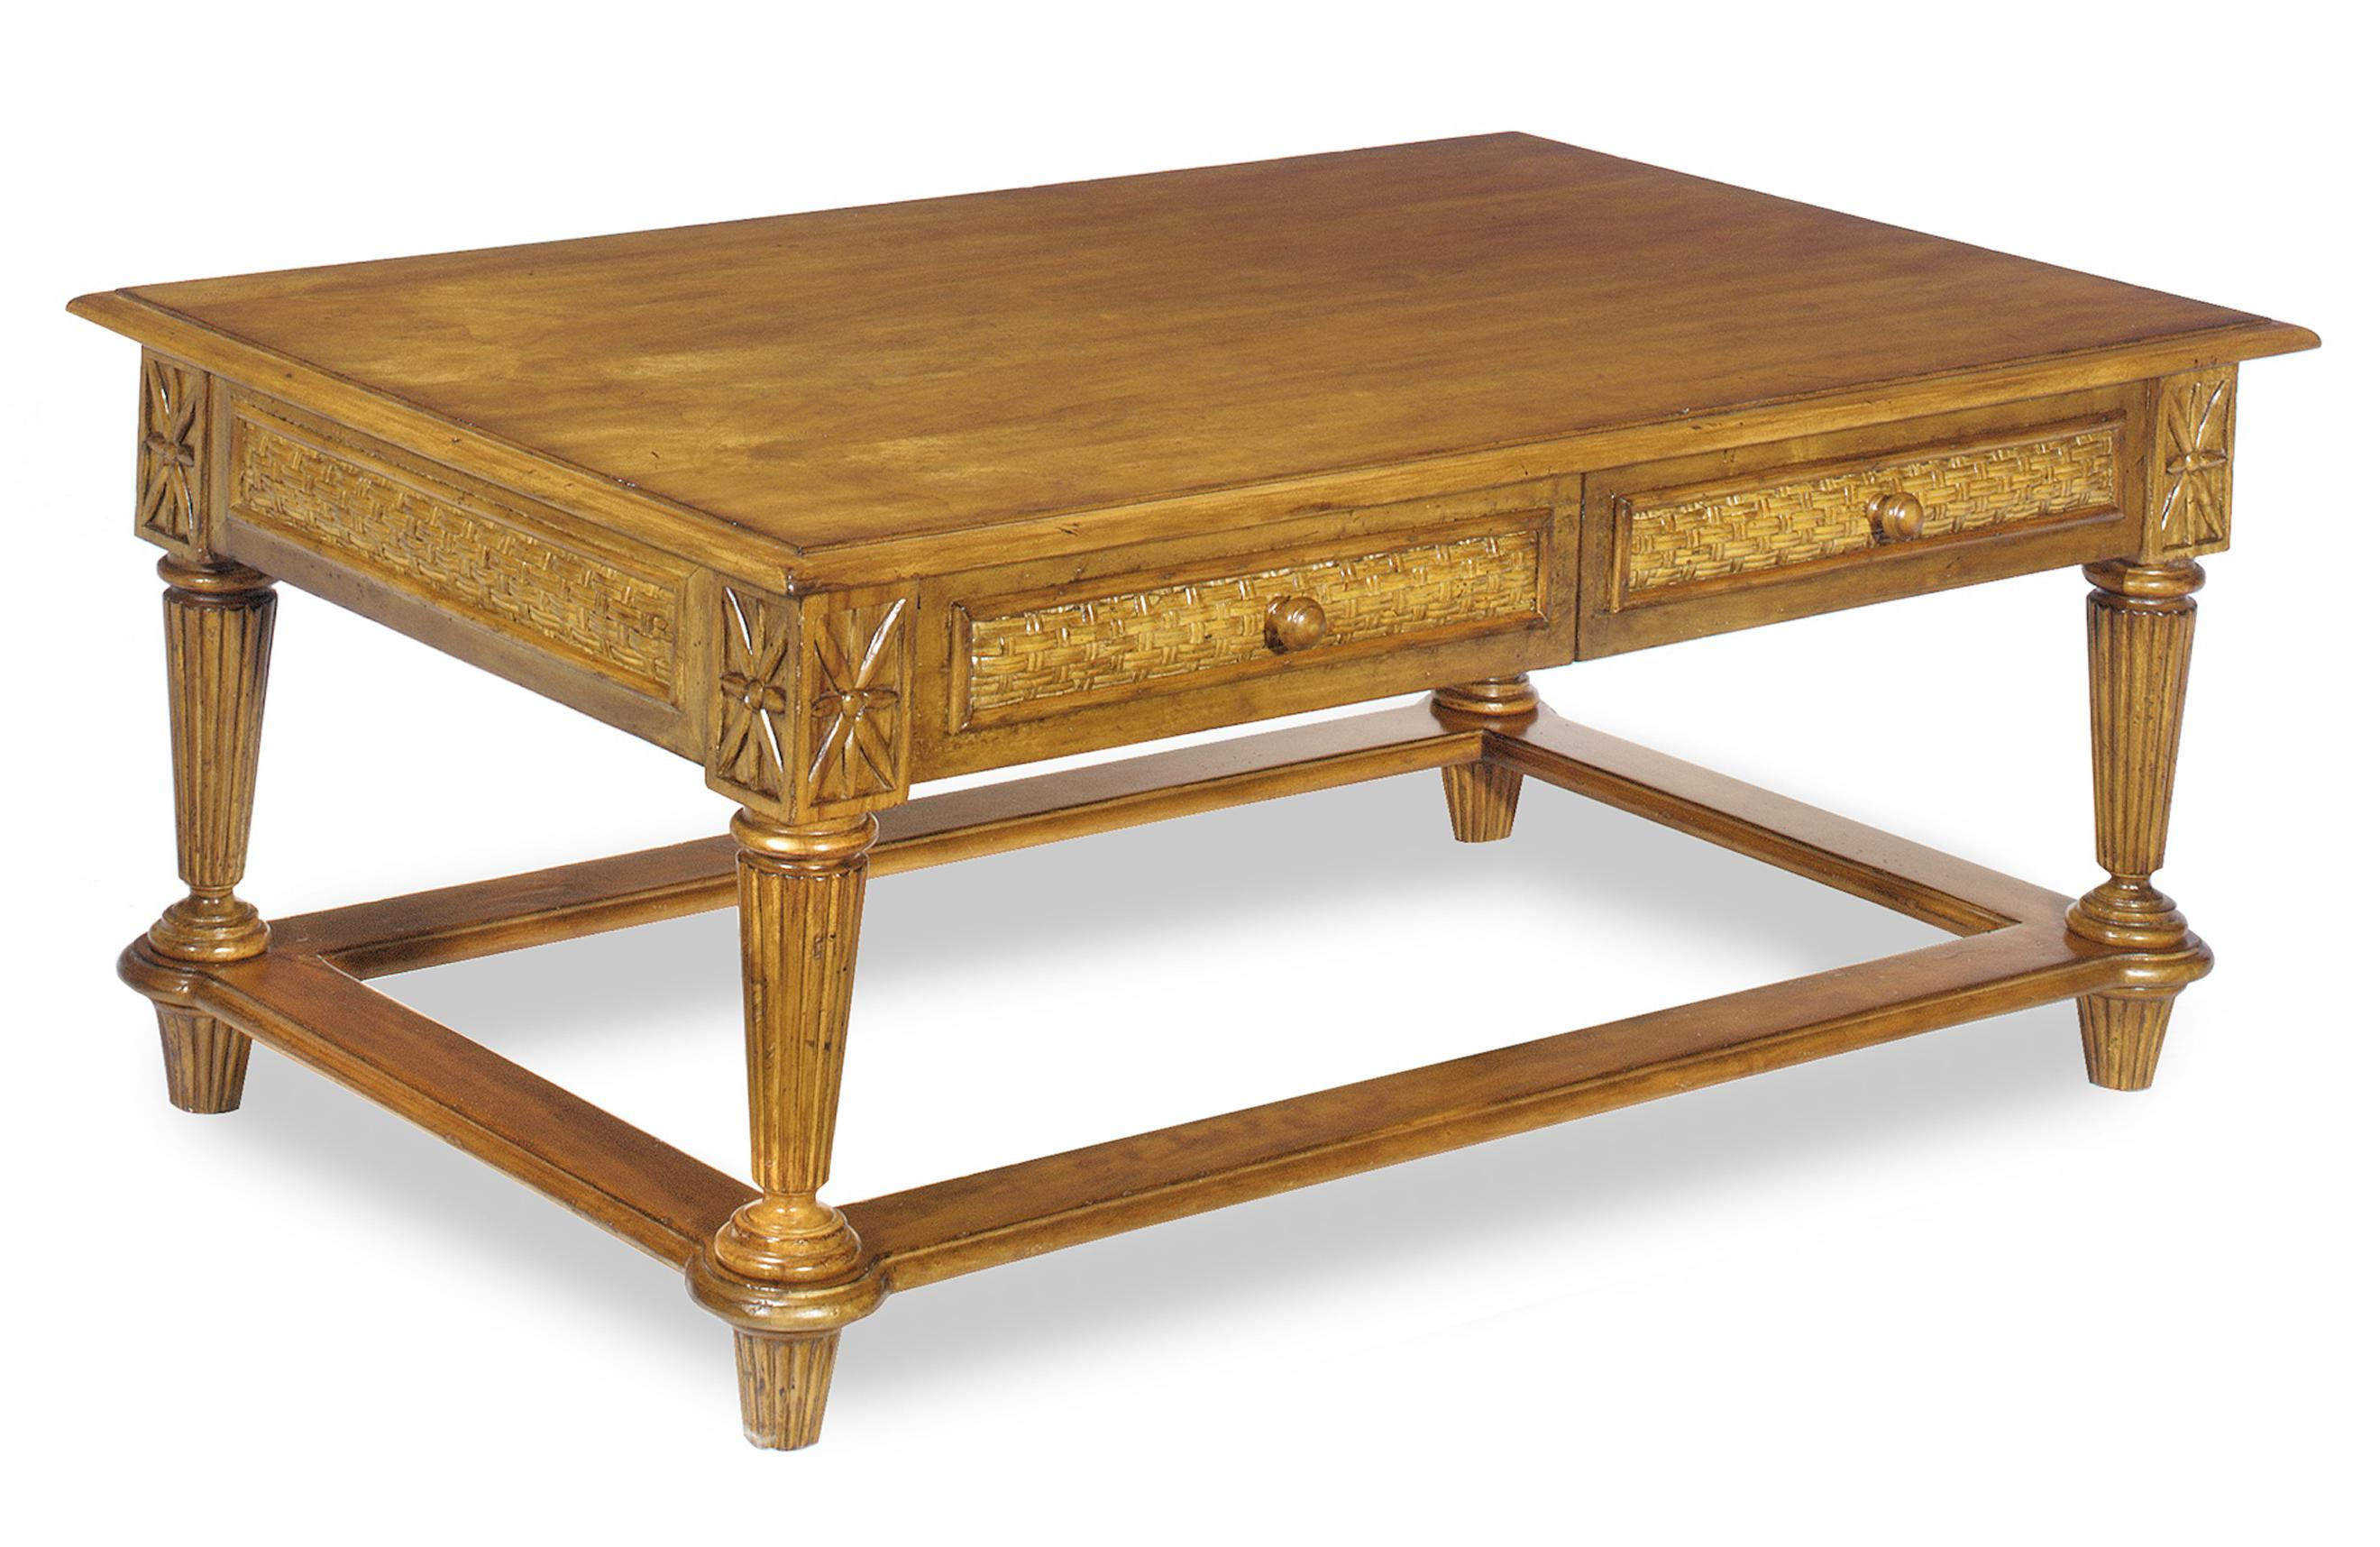 tropical coffee tables don shoemaker coffee table. Black Bedroom Furniture Sets. Home Design Ideas